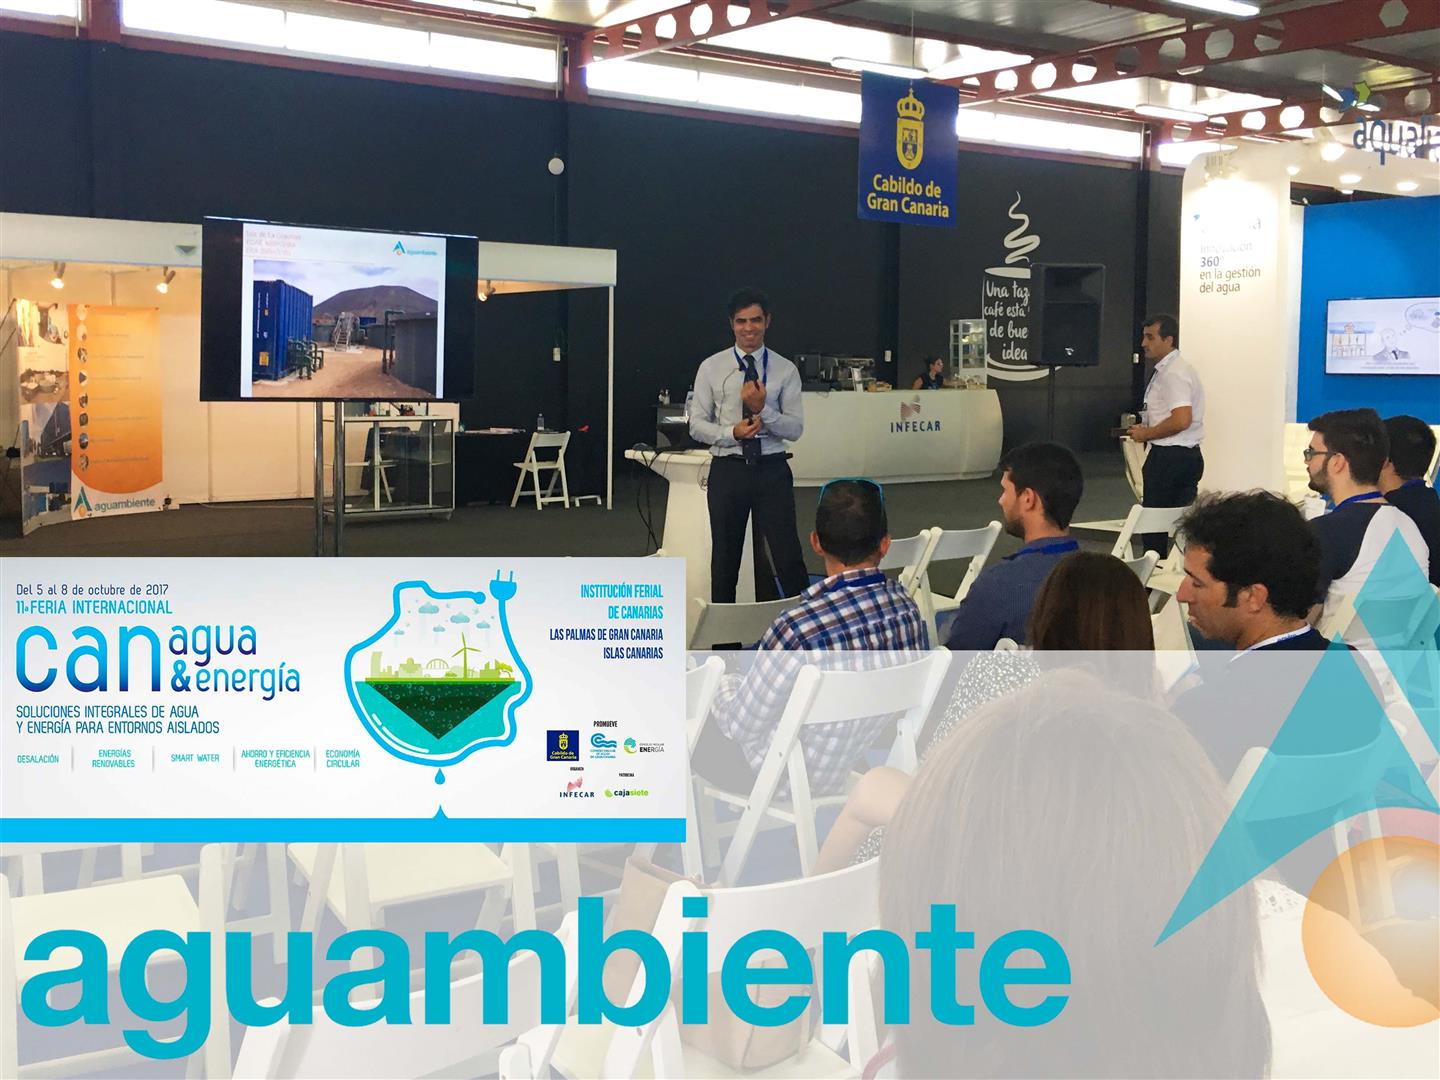 Thank all the visitors in Canagua & Energía